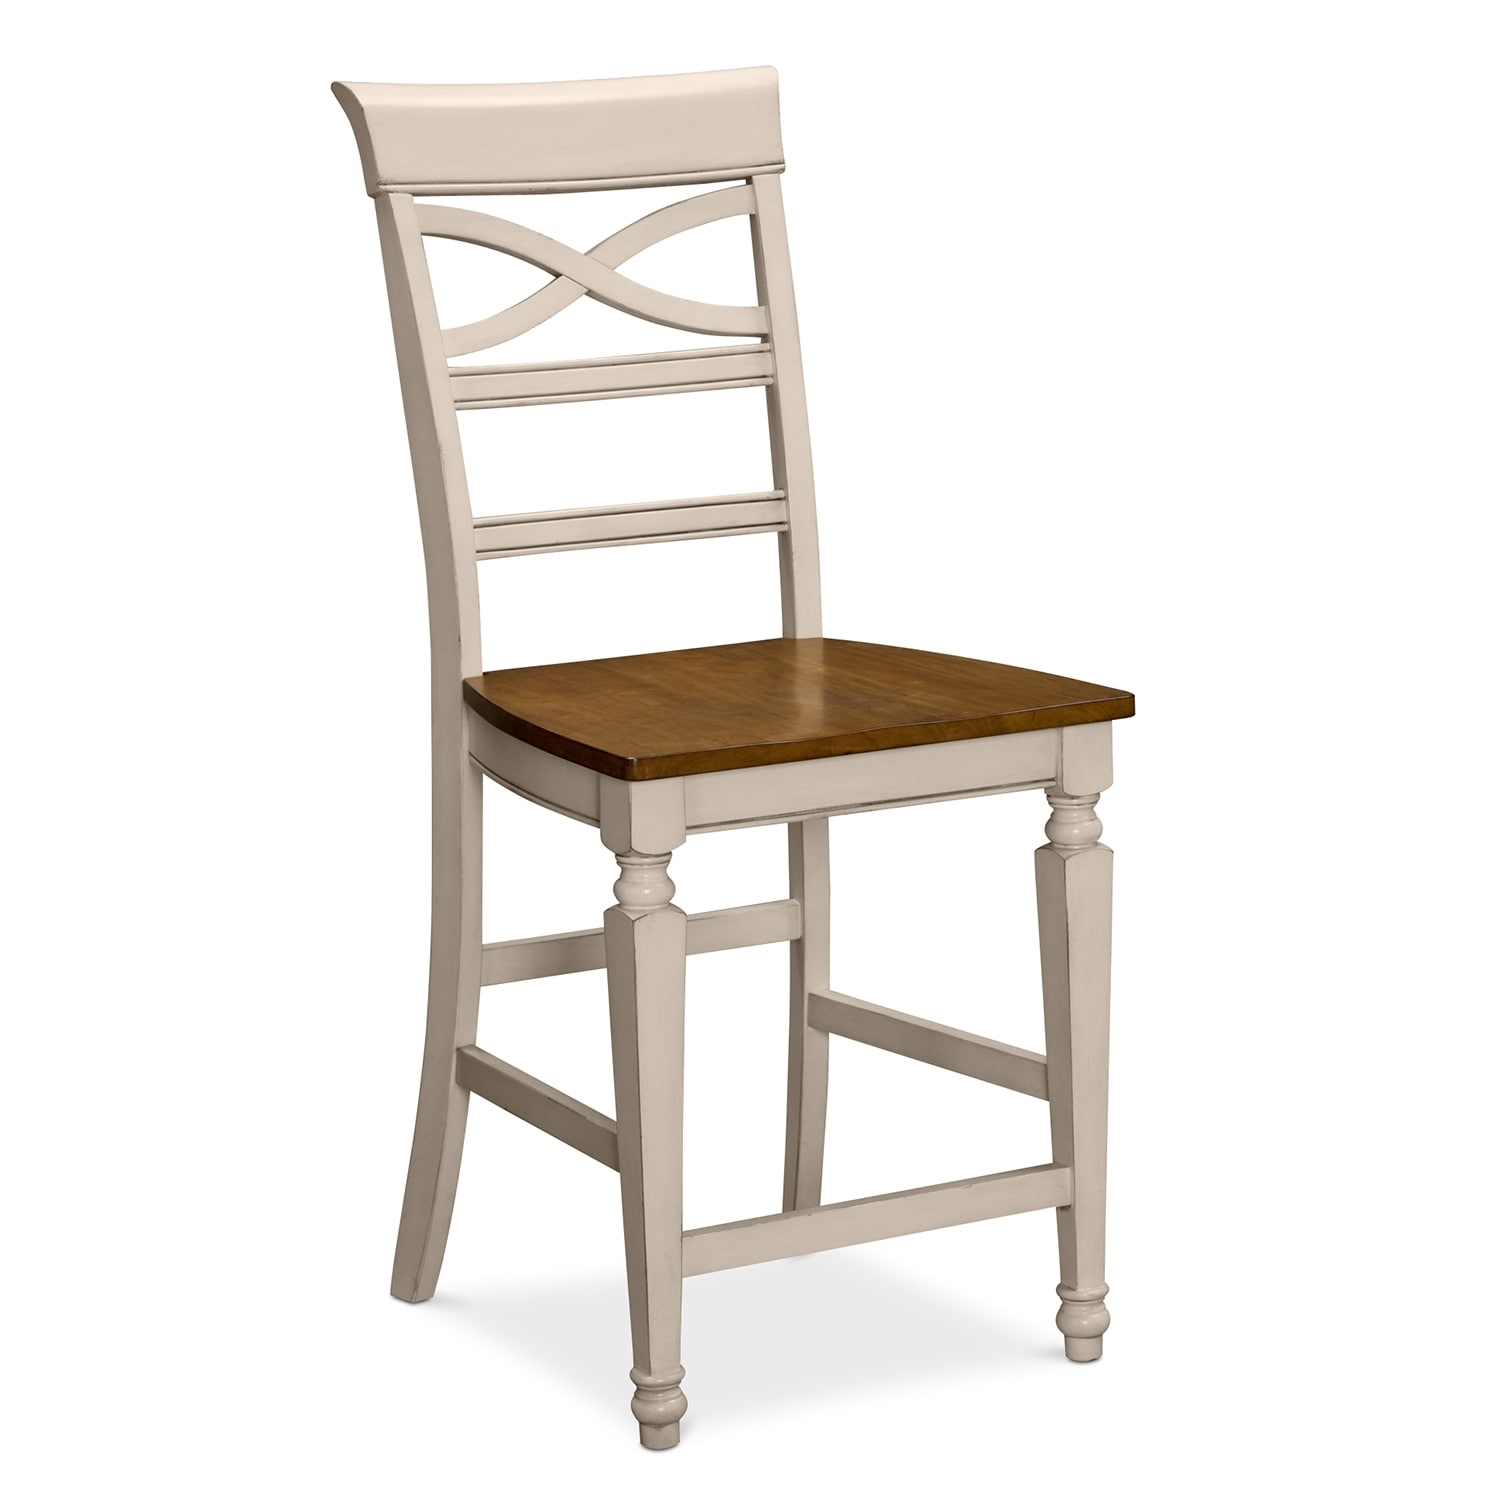 Counter Height Vs Bar Stool : Chesapeake II Dining Room Counter-Height Stool - Value City Furniture